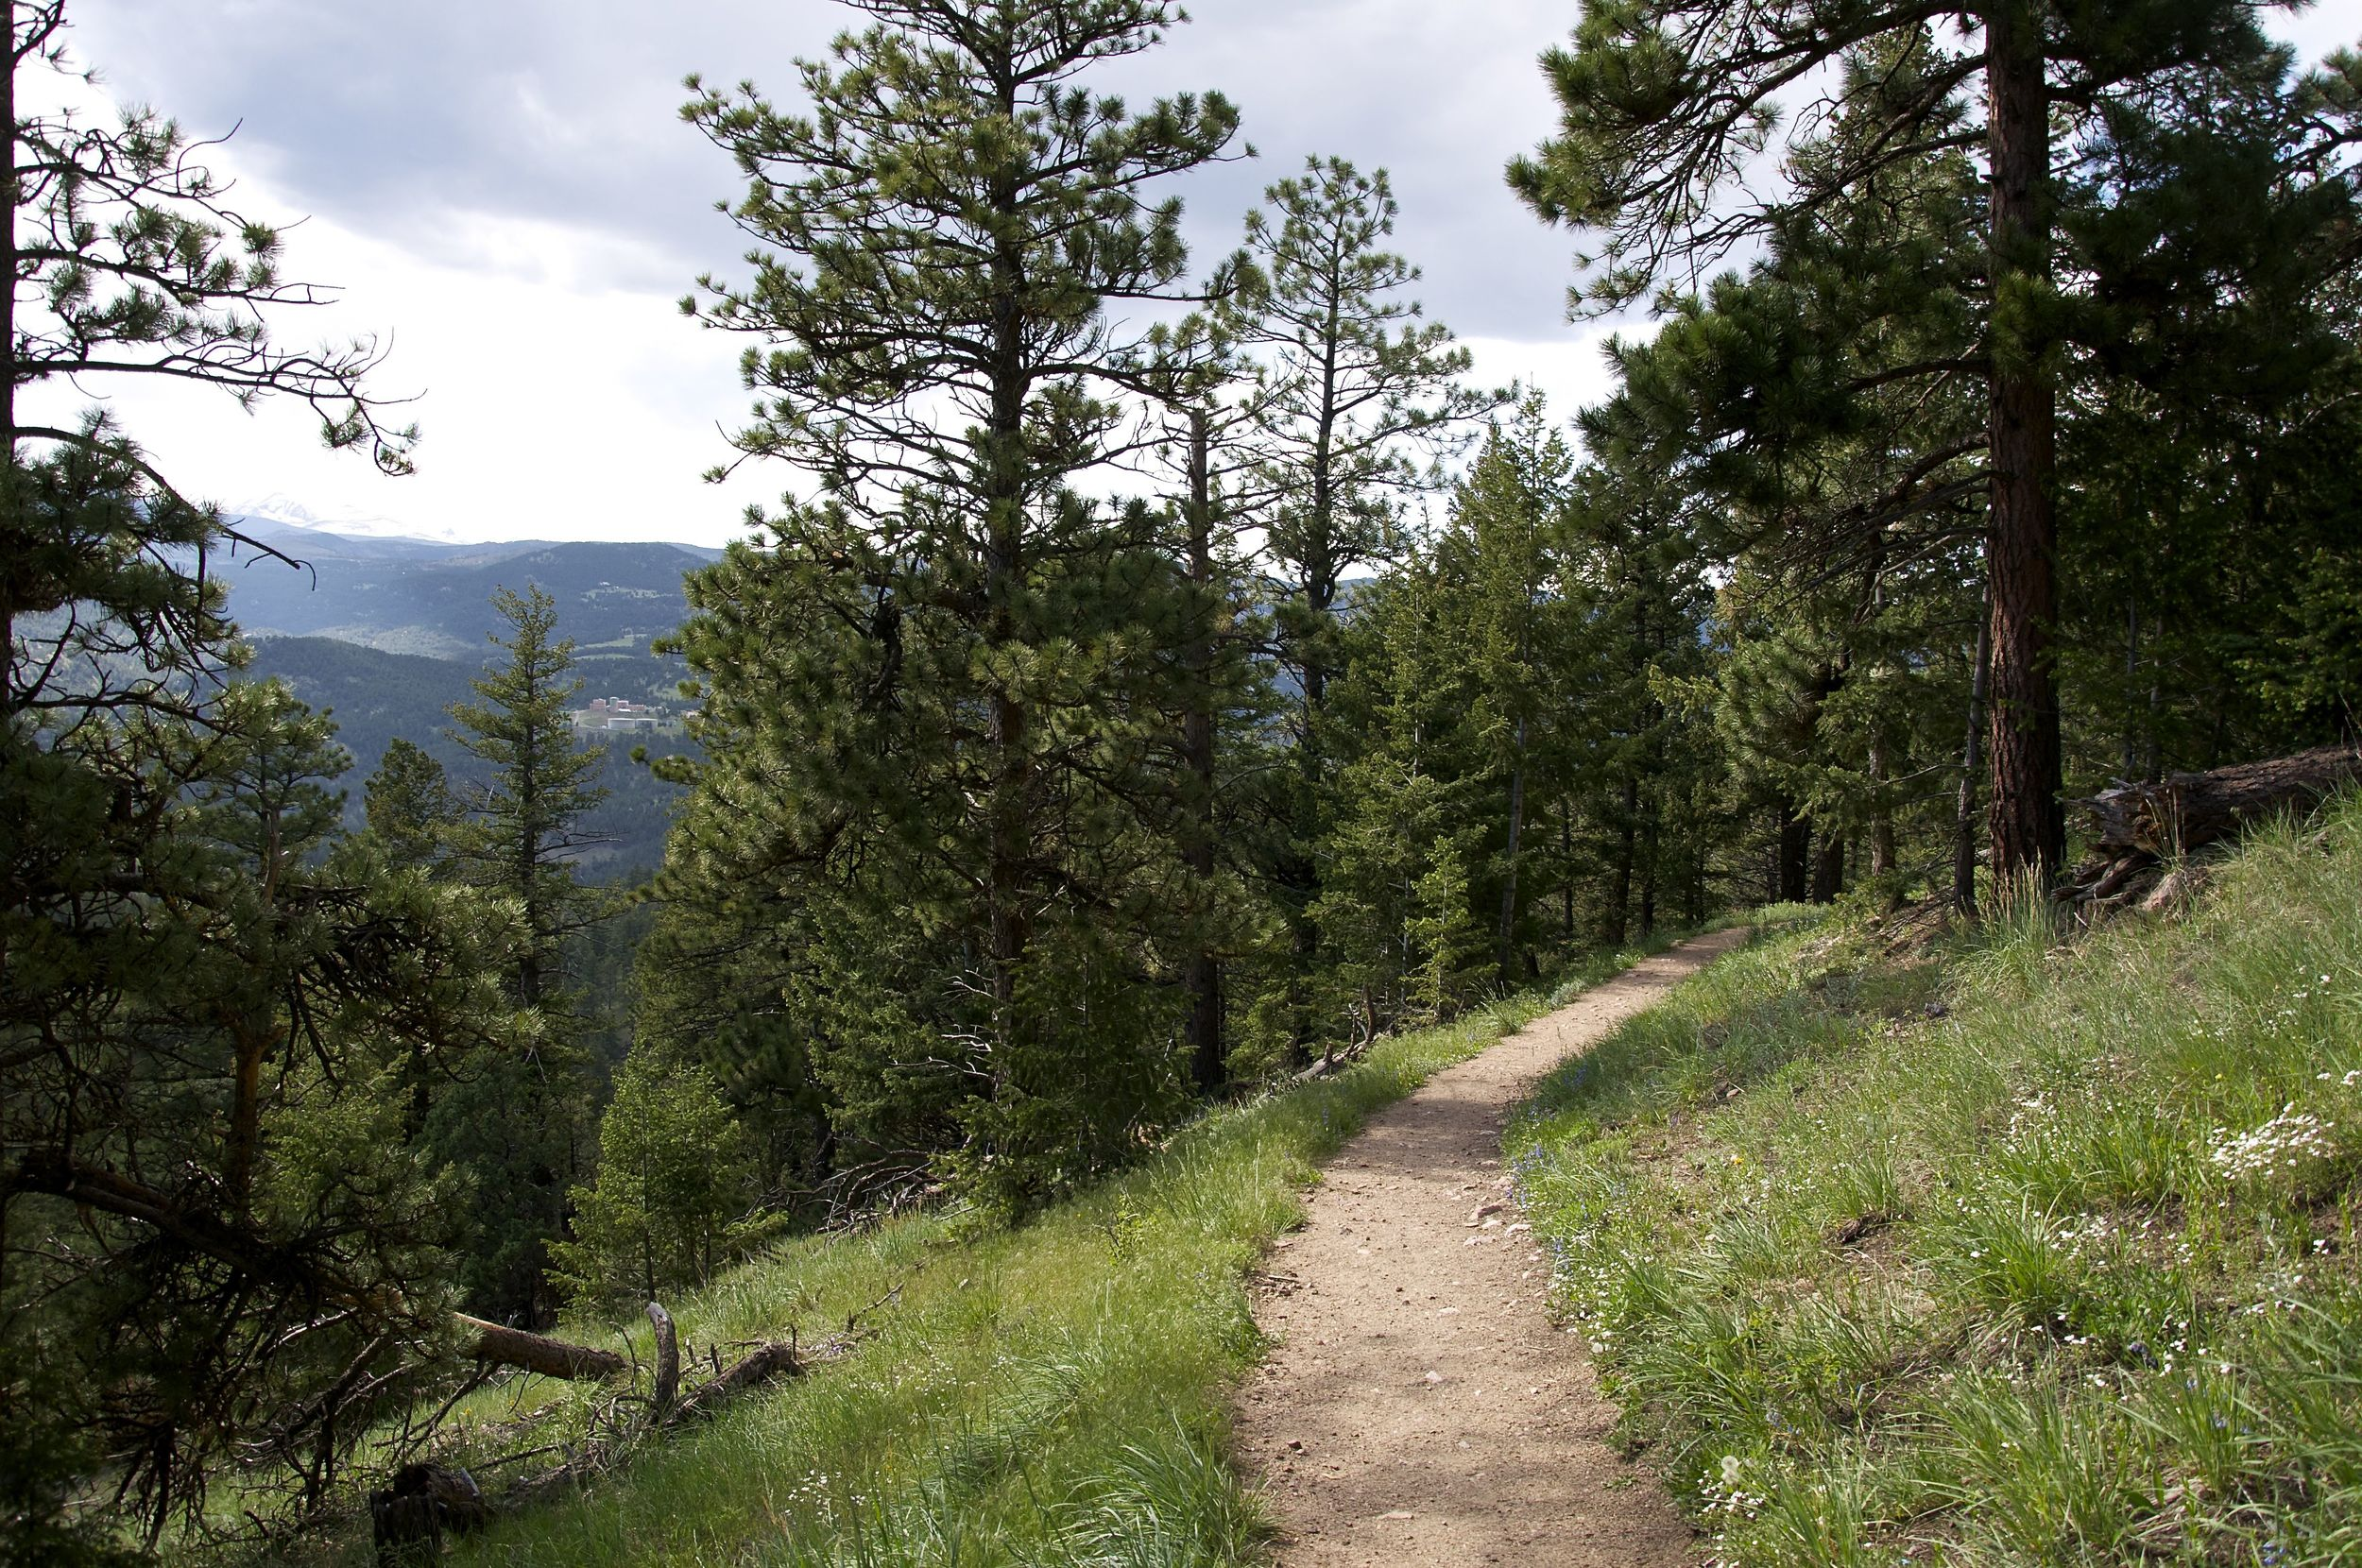 Tenderfoot's views of the divide are some of the best!